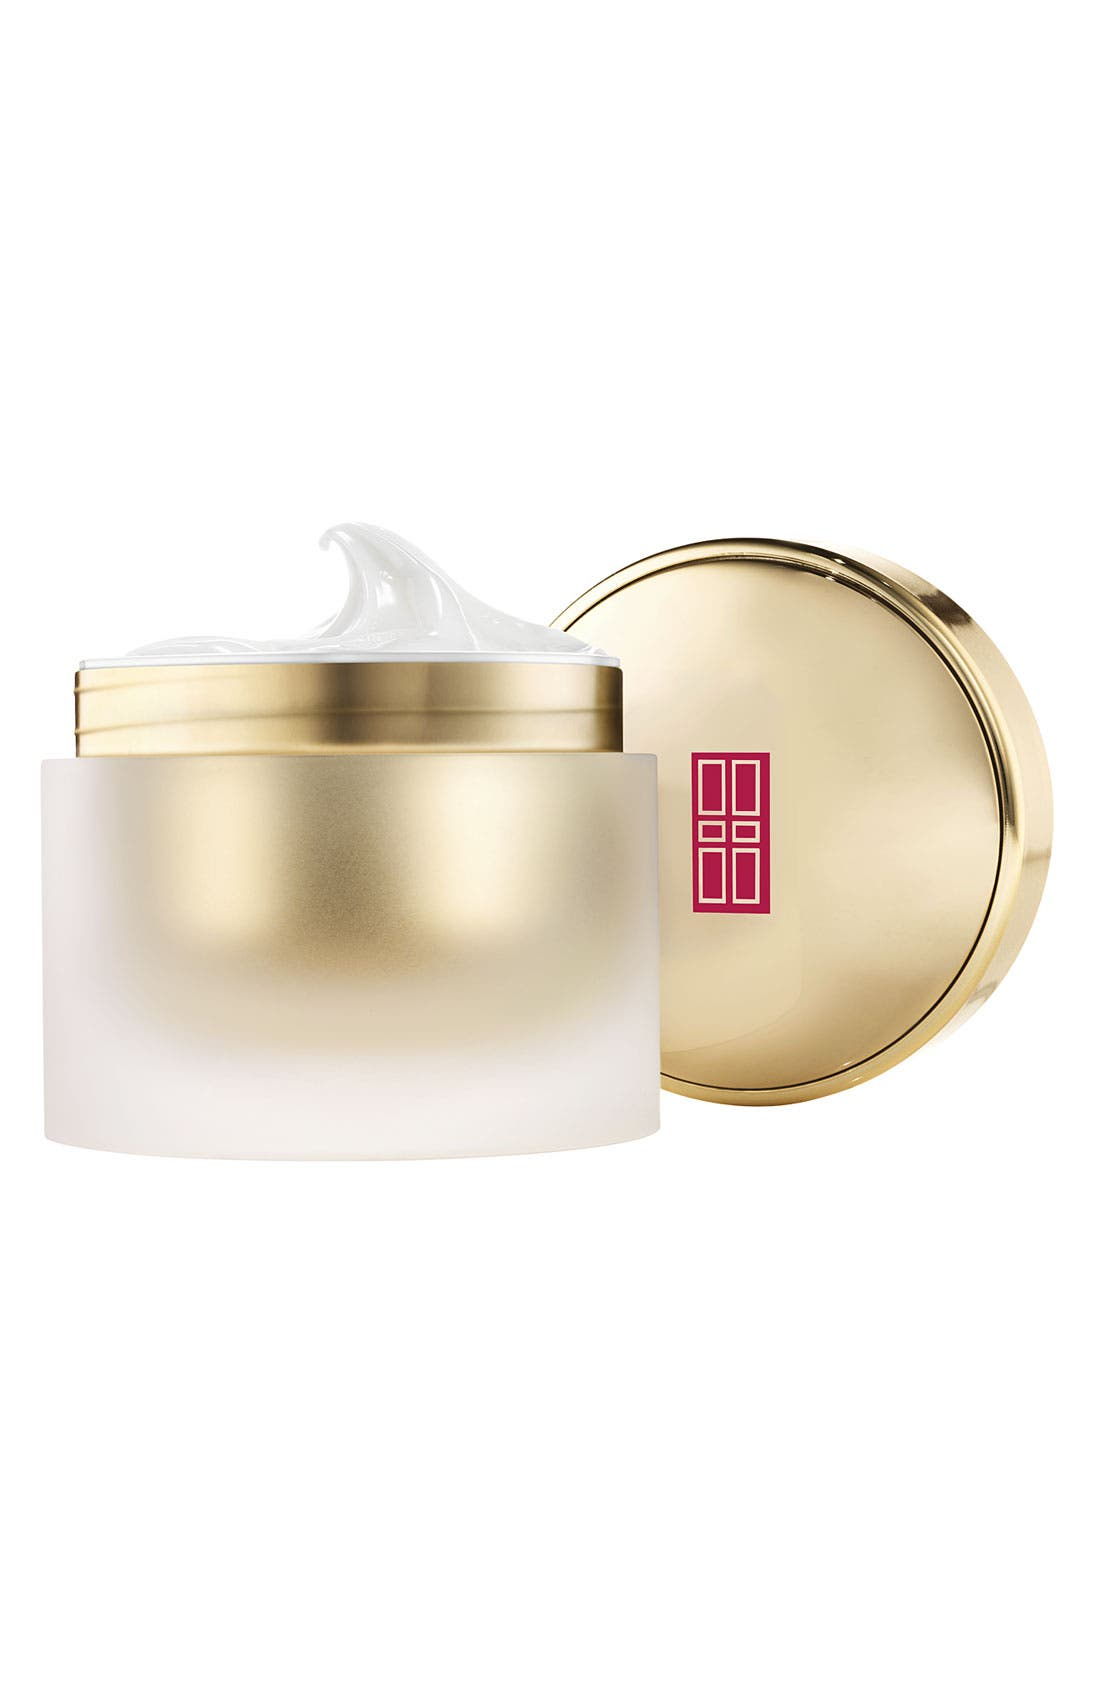 Elizabeth Arden Ceramide Lift & Firm Day Cream Broad Spectrum Sunscreen SPF 30